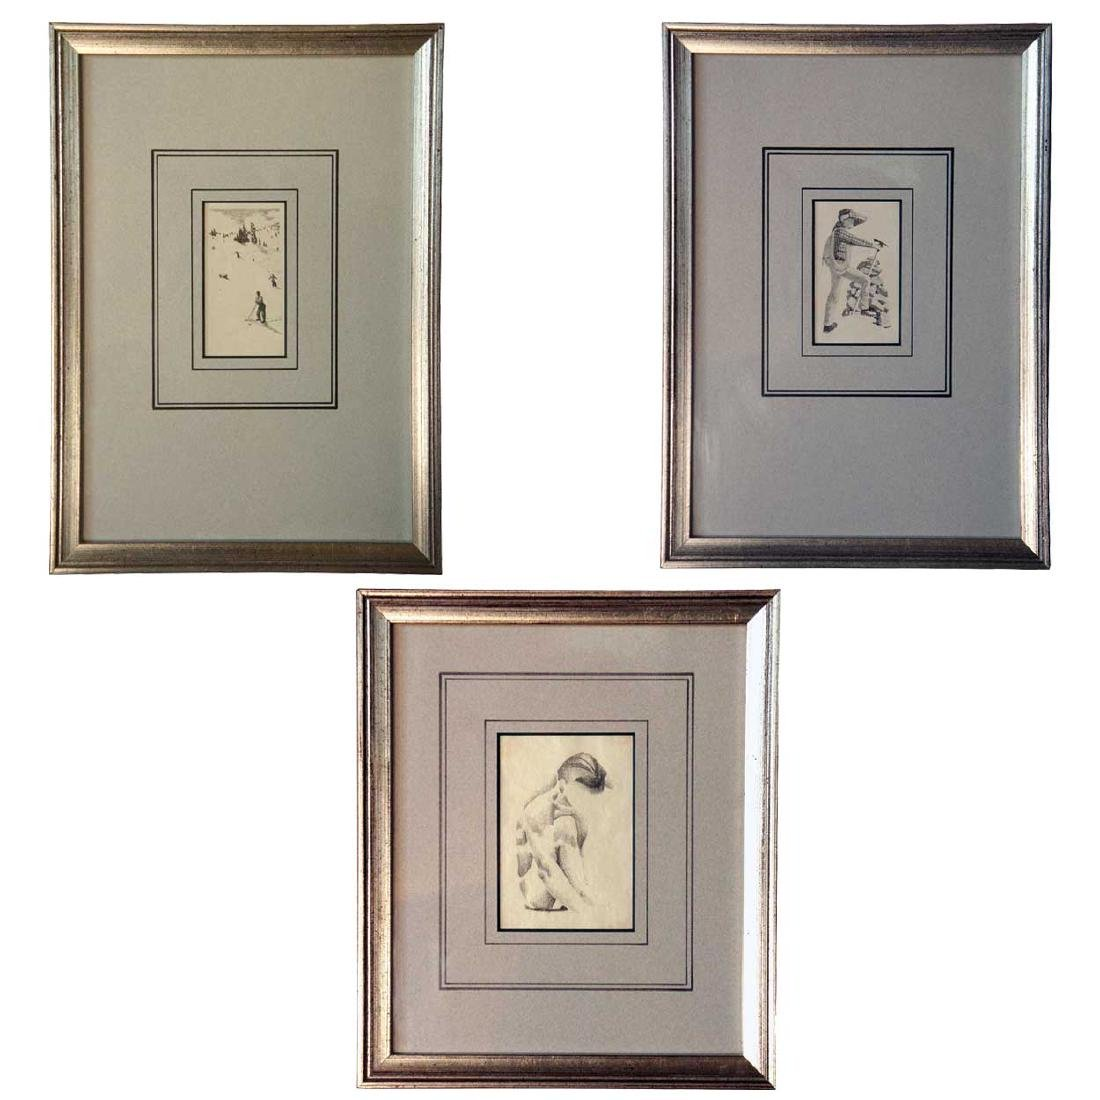 3 WILLIAM HENRY TRAHER Drawings